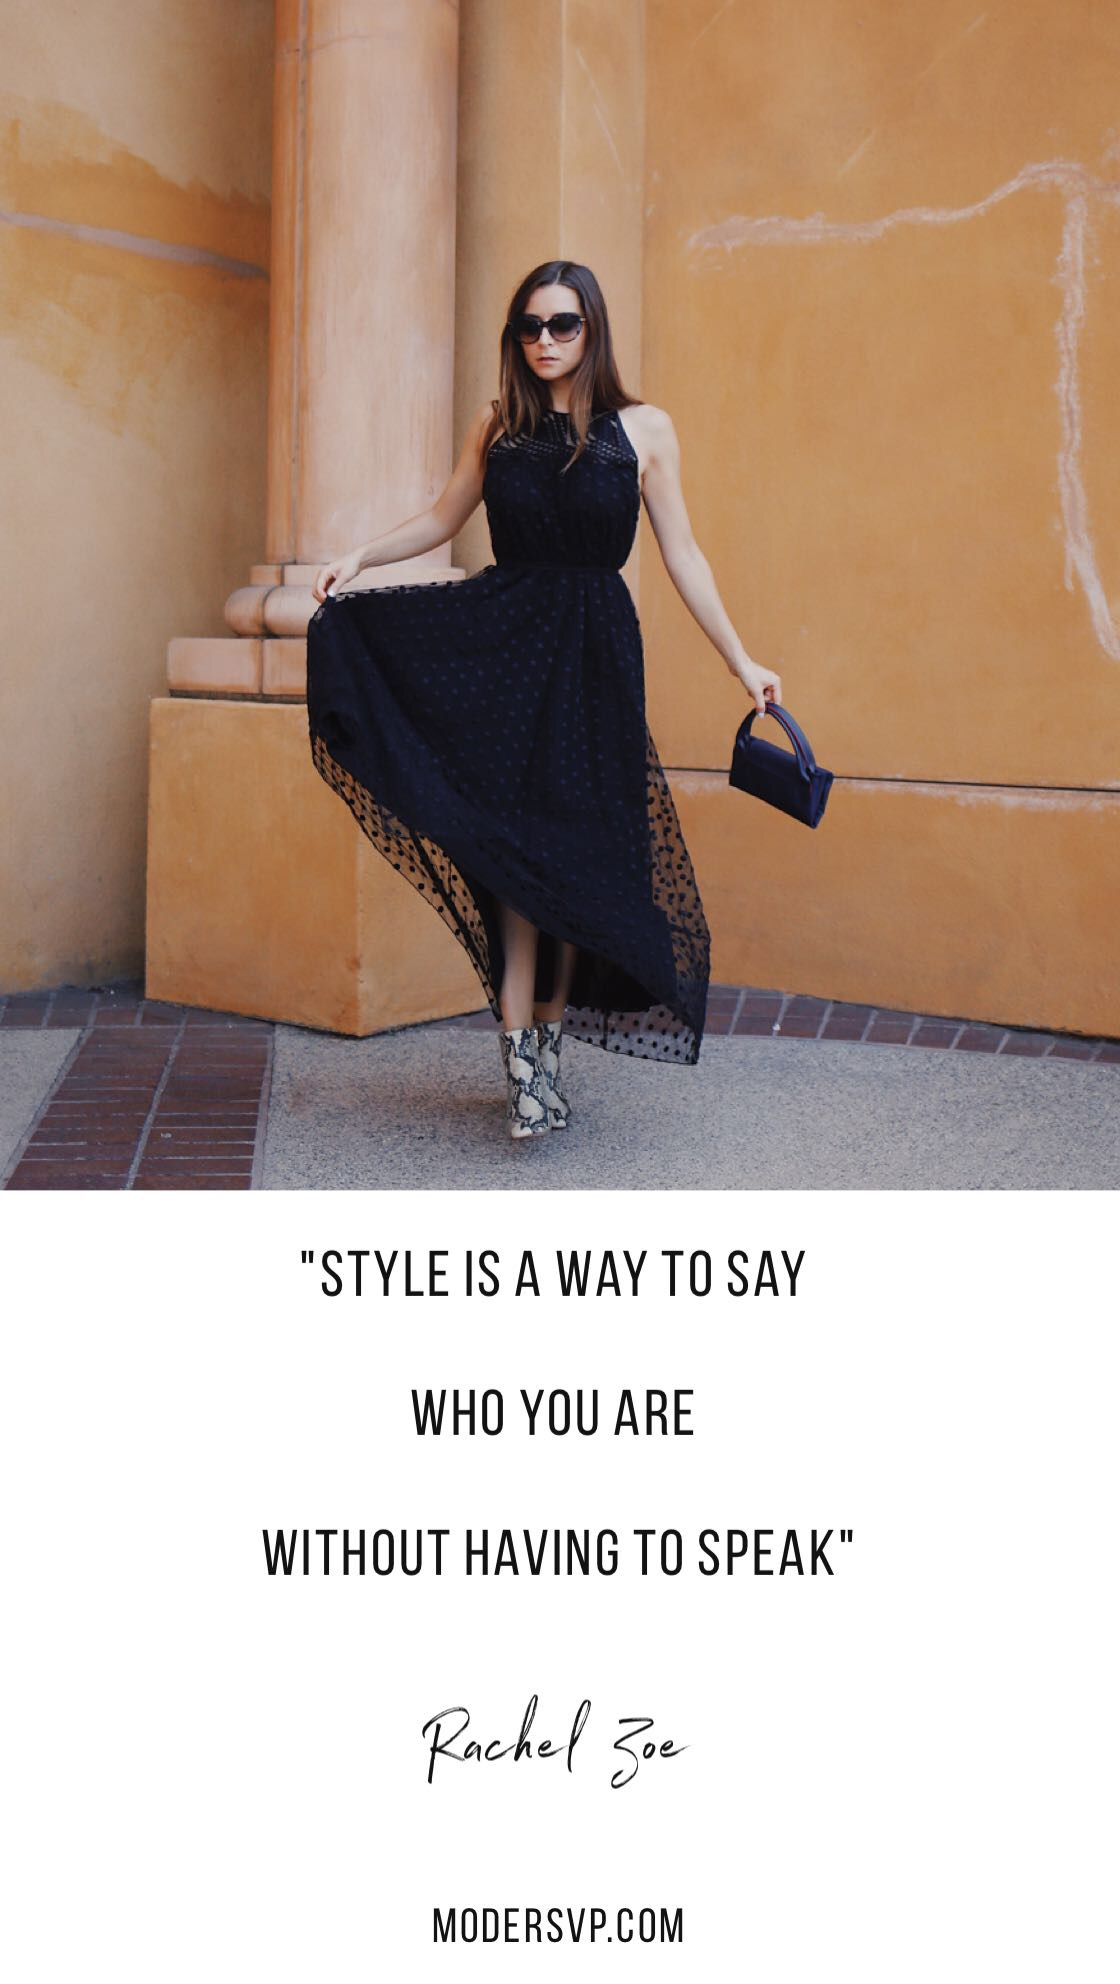 "Best Style quotes - Inspirational Fashion Quotes - ""Style is a way to say who you are without having to speak"" Rachel Zoe - Read more style quotes from Anna Wintour, Diane Von Furstenberg, Coco Chanel and other fashion designers and style icons on Houseofcomil.com"